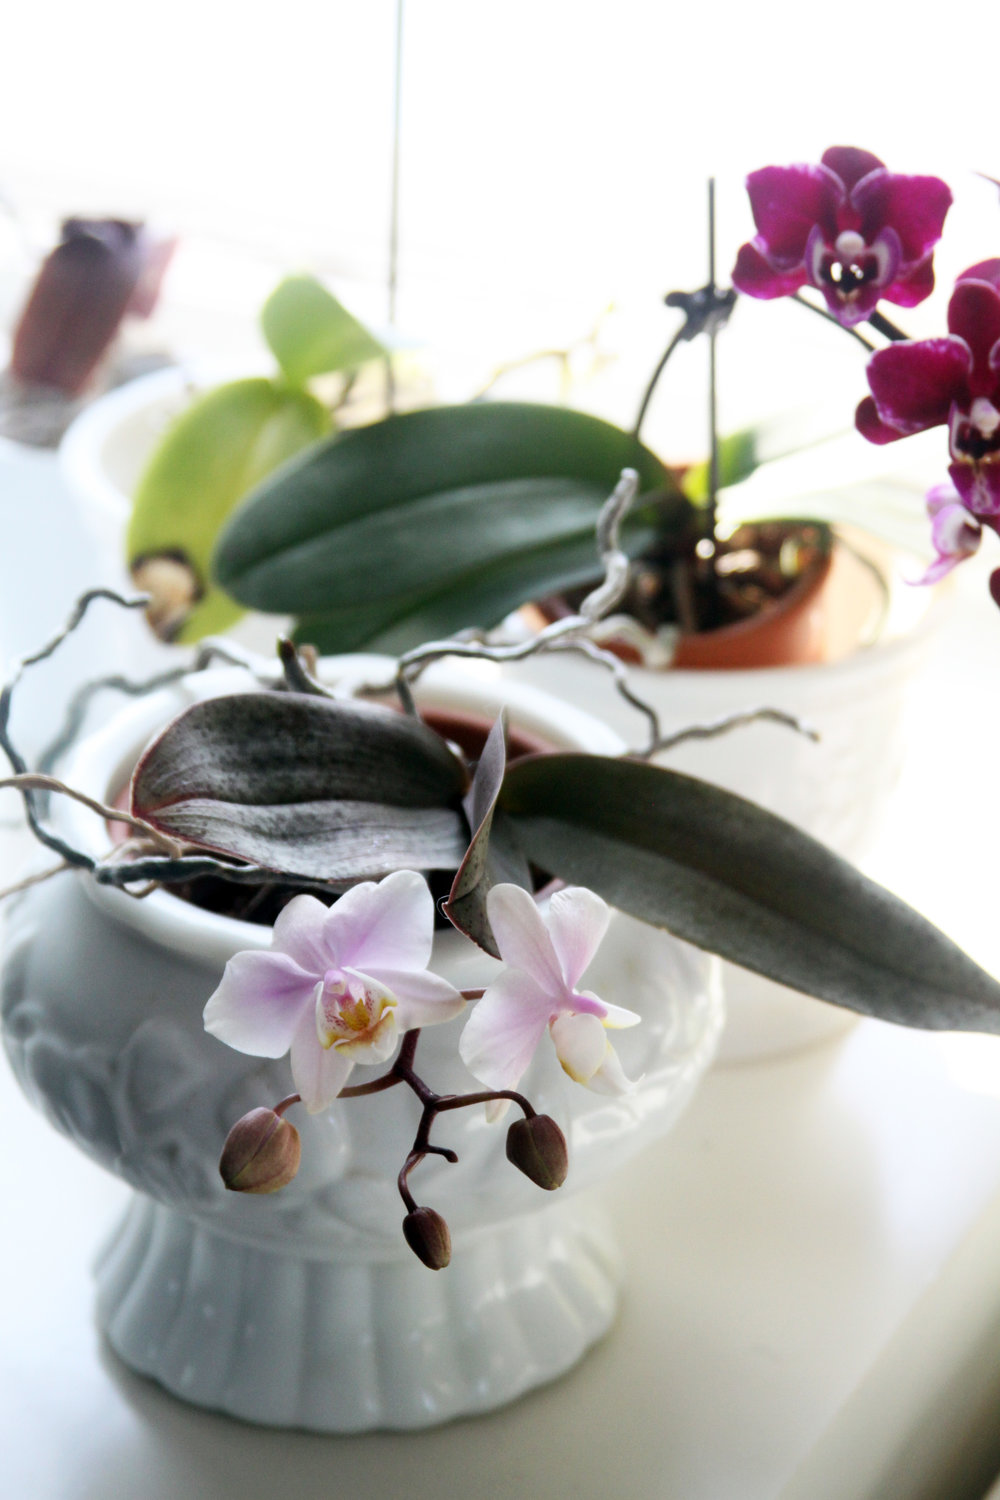 Orchids Blooming in My Studio Brighten the Winter Dreariness and Provide Inspiration for my Art